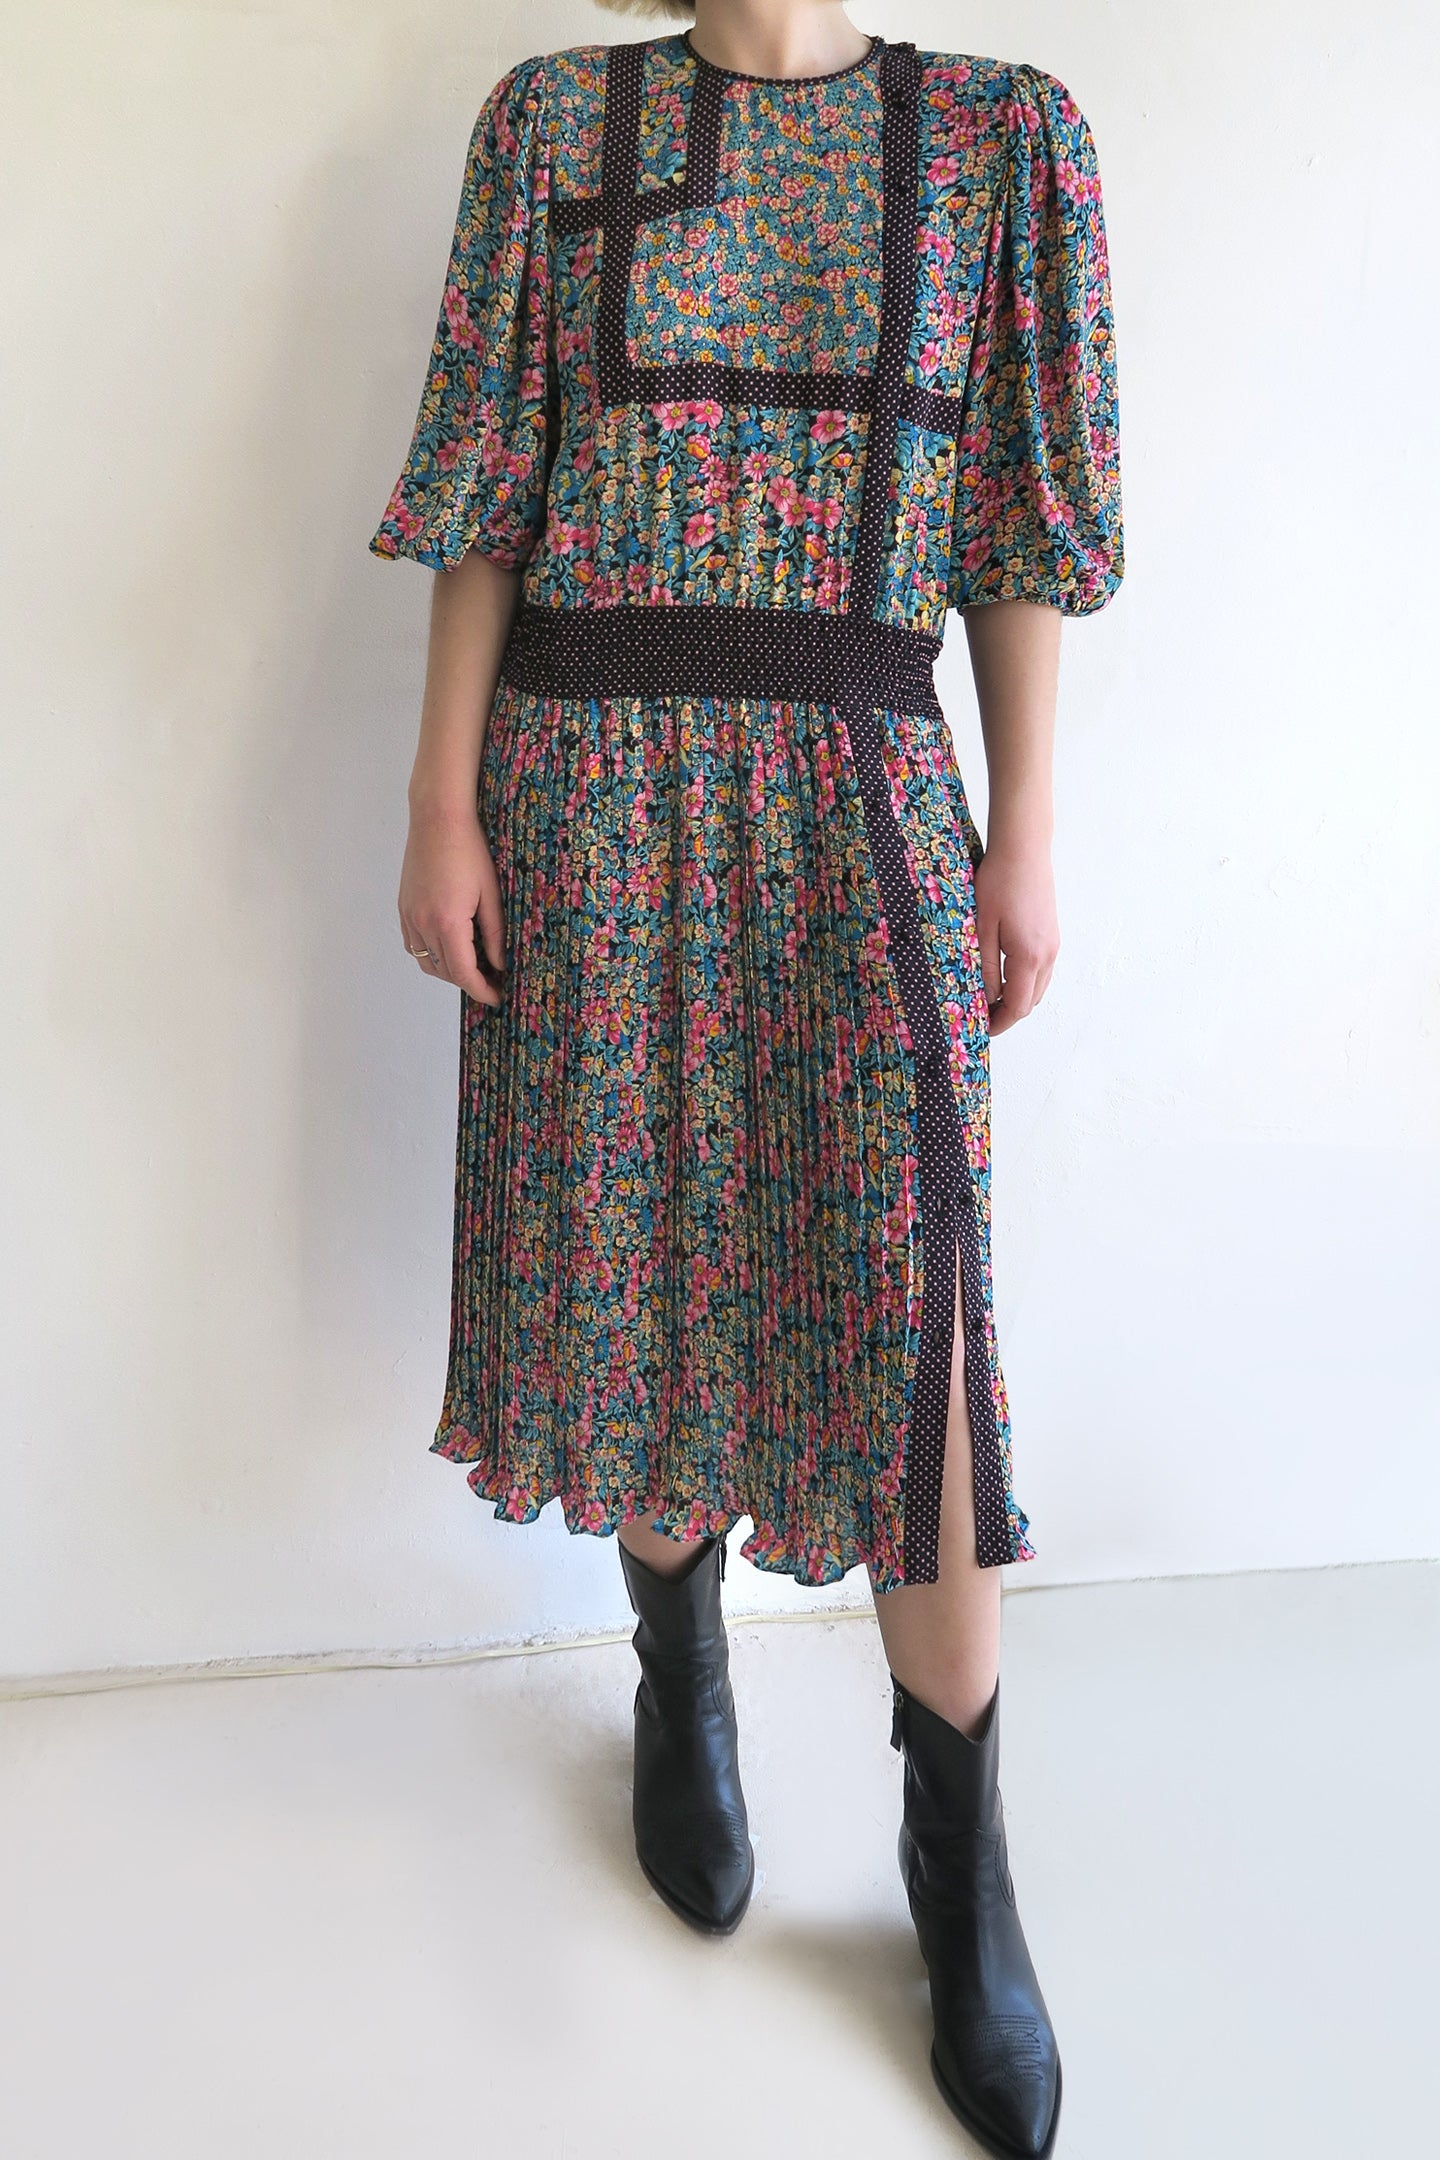 Diane Freis Vintage Dress